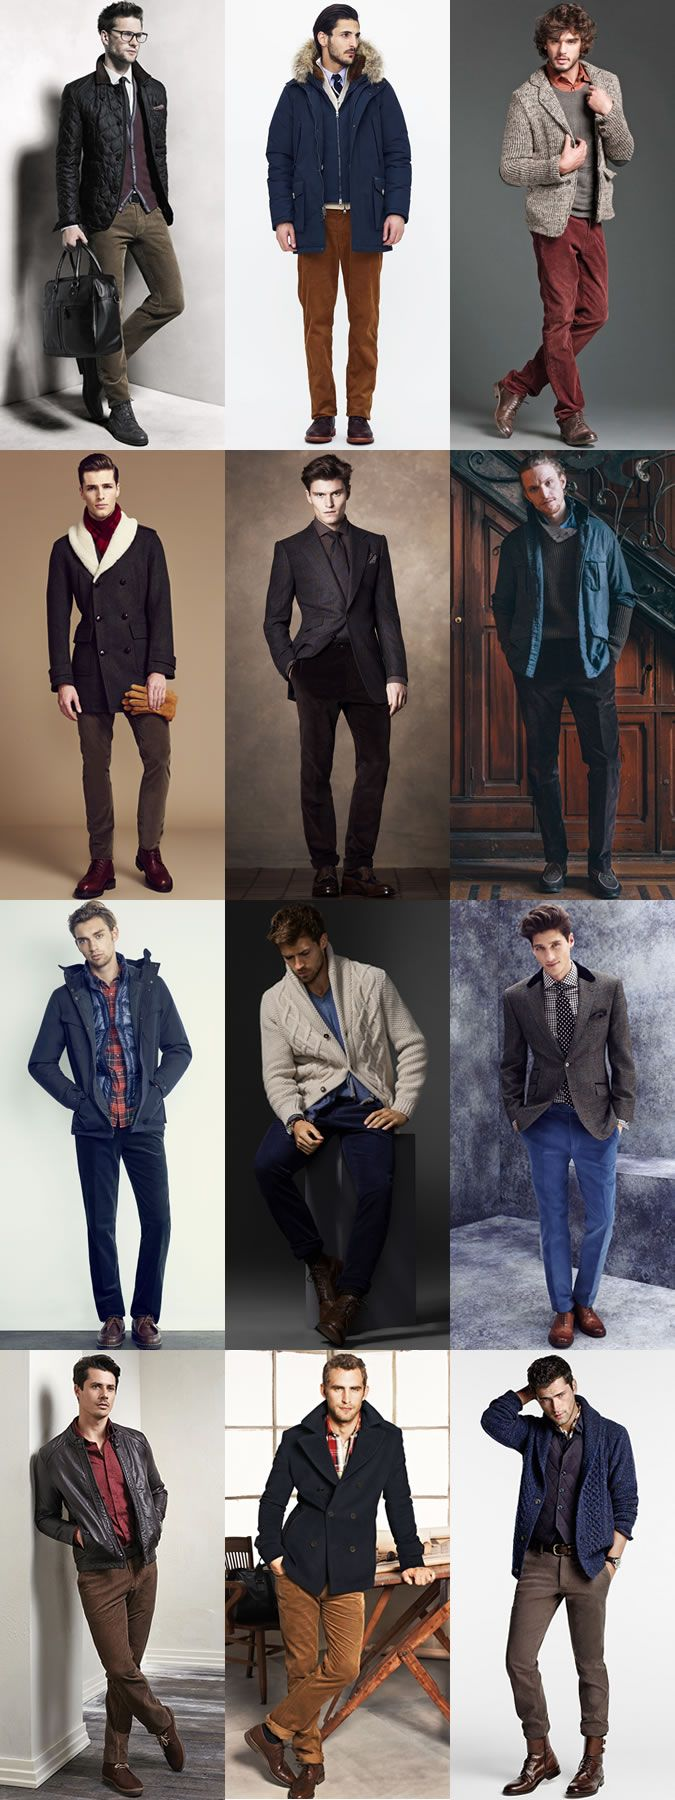 Style Tips for Men's Trousers#mens pants#Mens fashion clothing